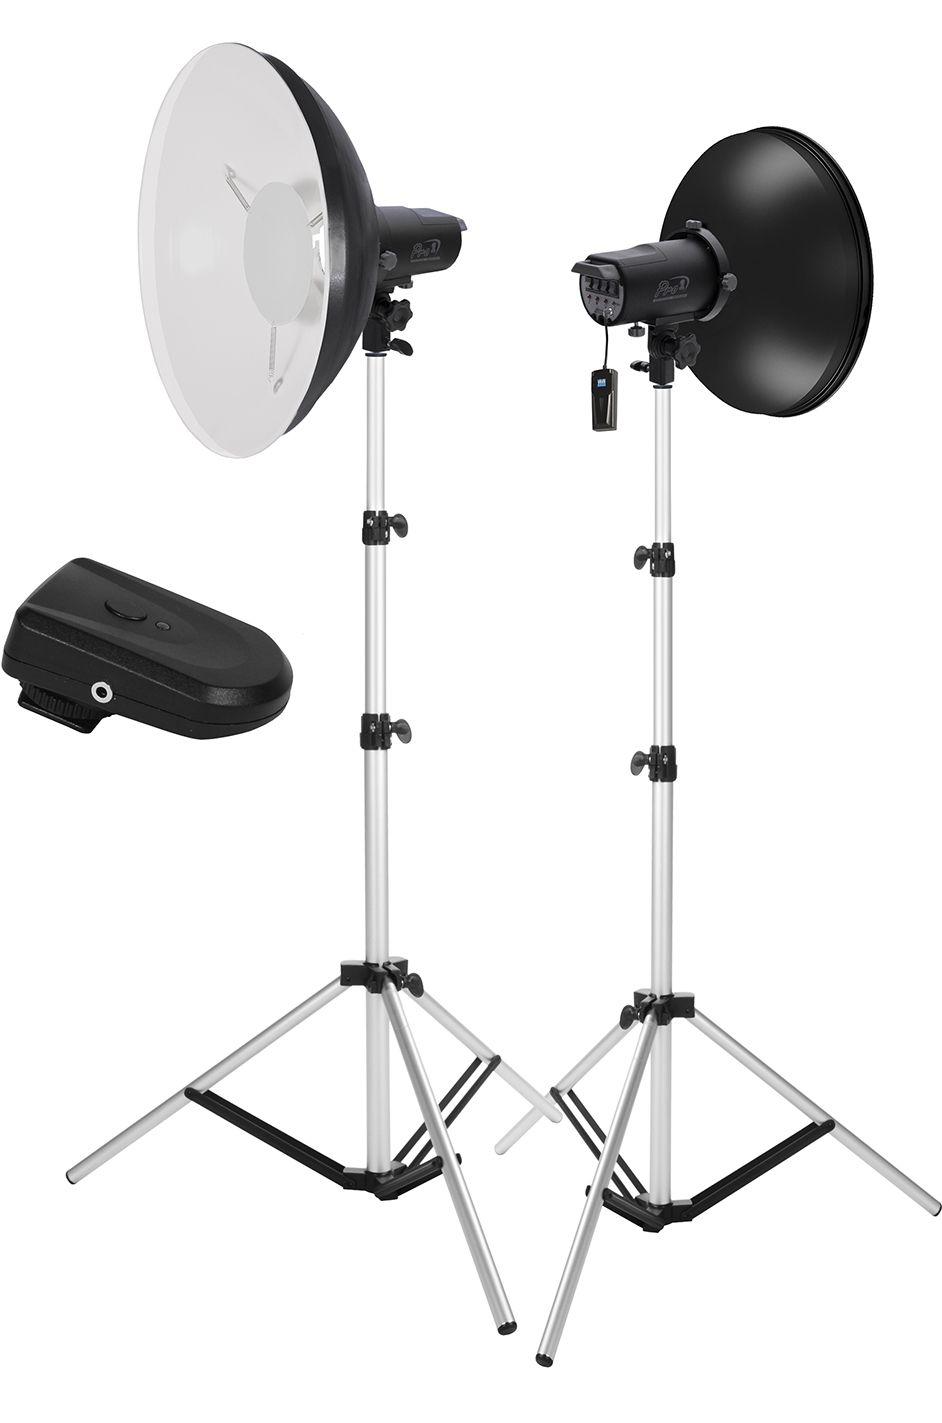 KIT ODONTO LIGHT HDP BEAUTY DISH